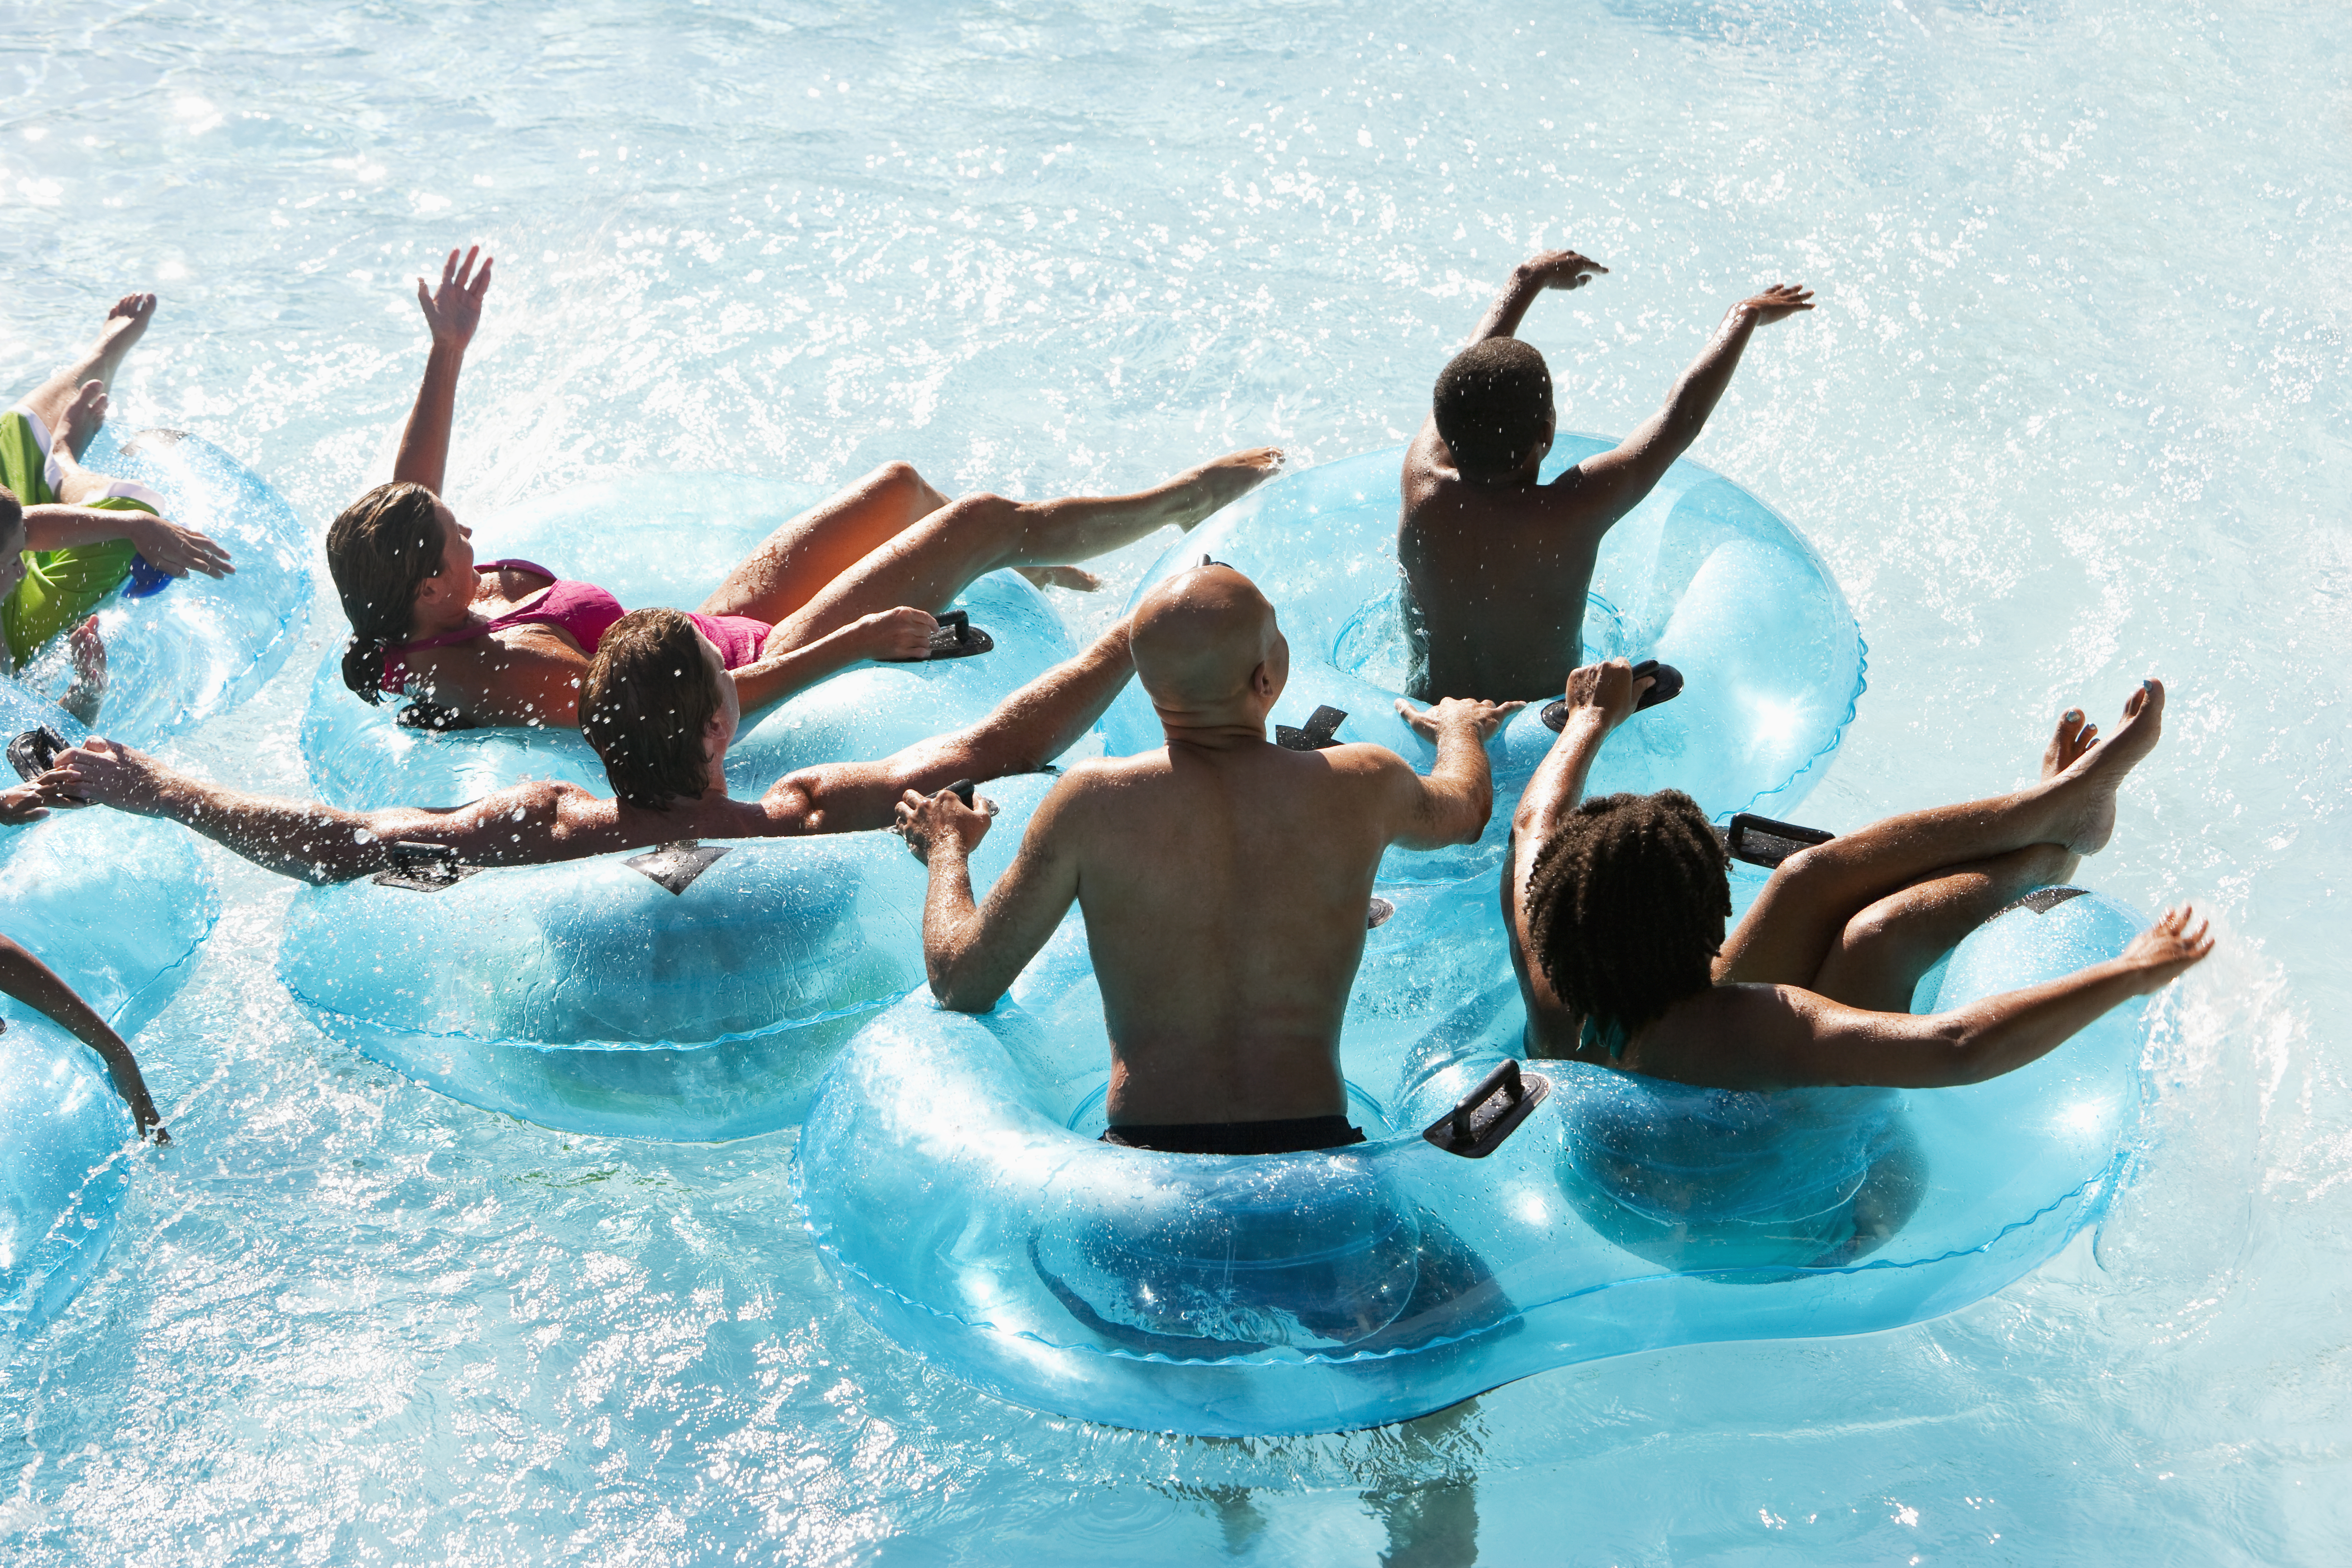 Group of people on innertubes at water park